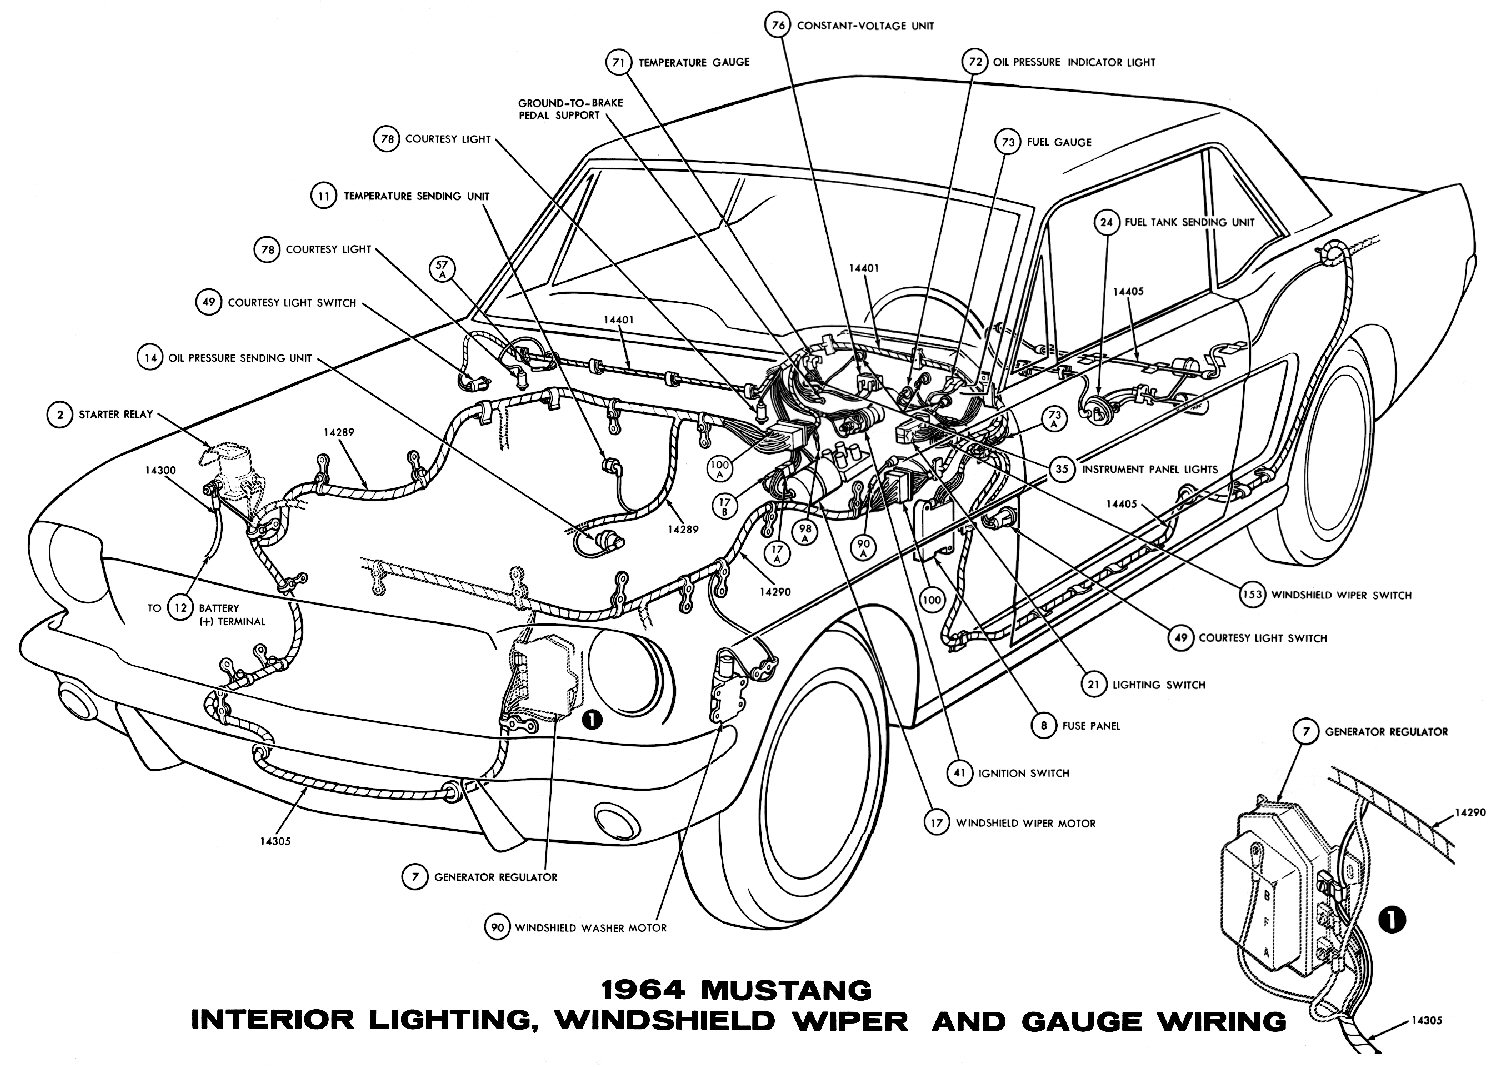 1964 Mustang Wiring Diagrams Average Joe Restoration Typical Fuse Box Sm1964j